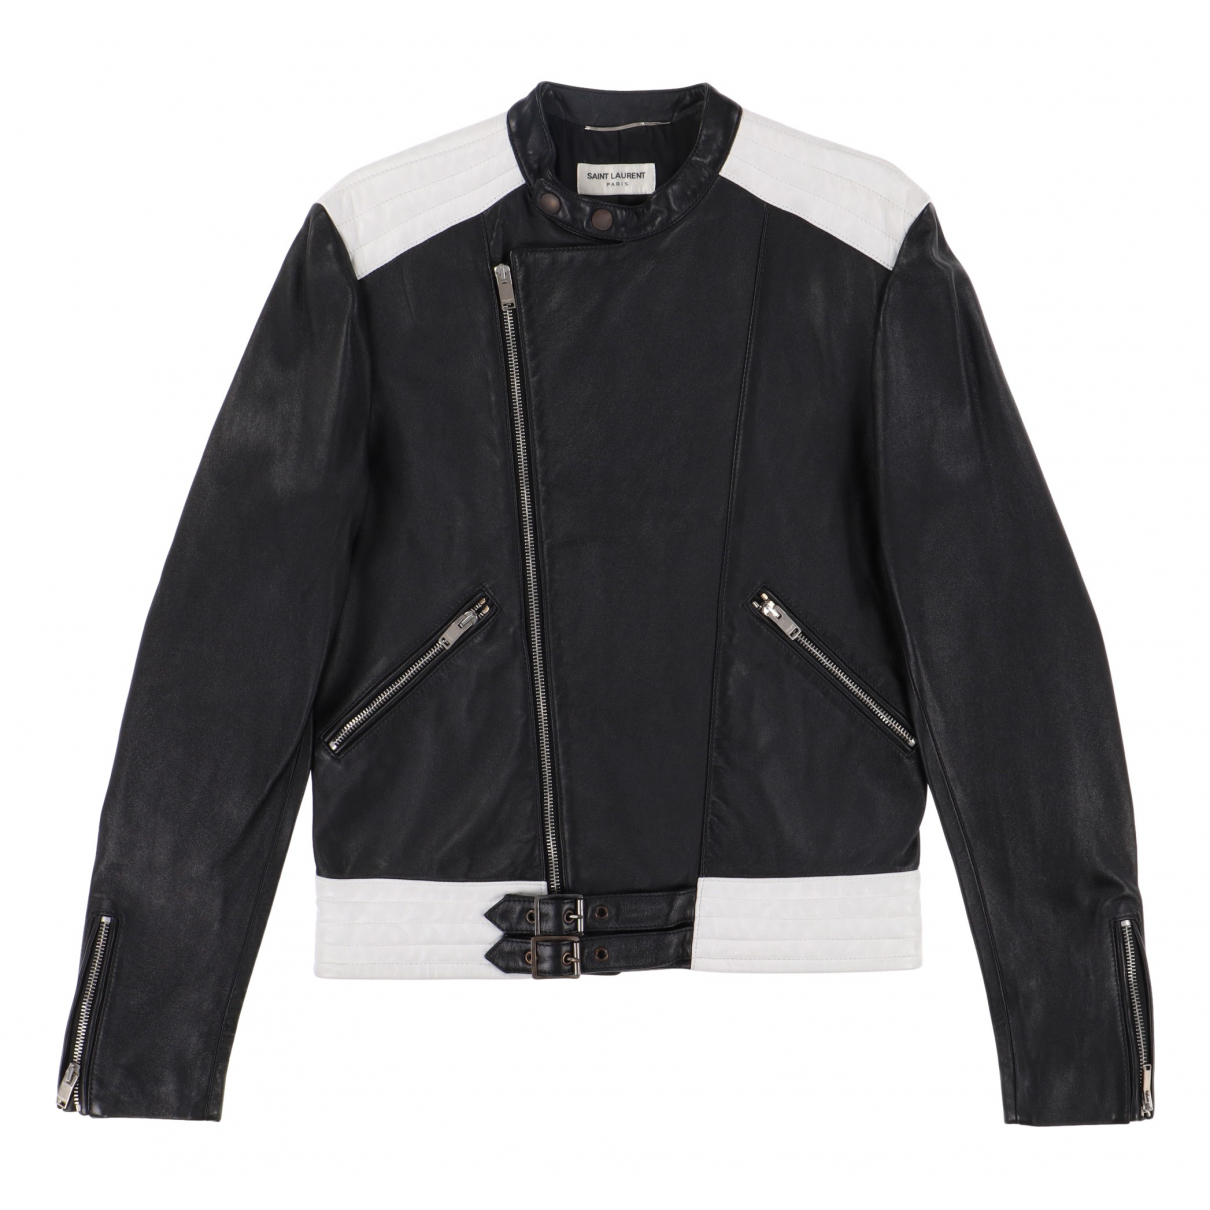 Saint Laurent \N Black Leather jacket  for Men S International